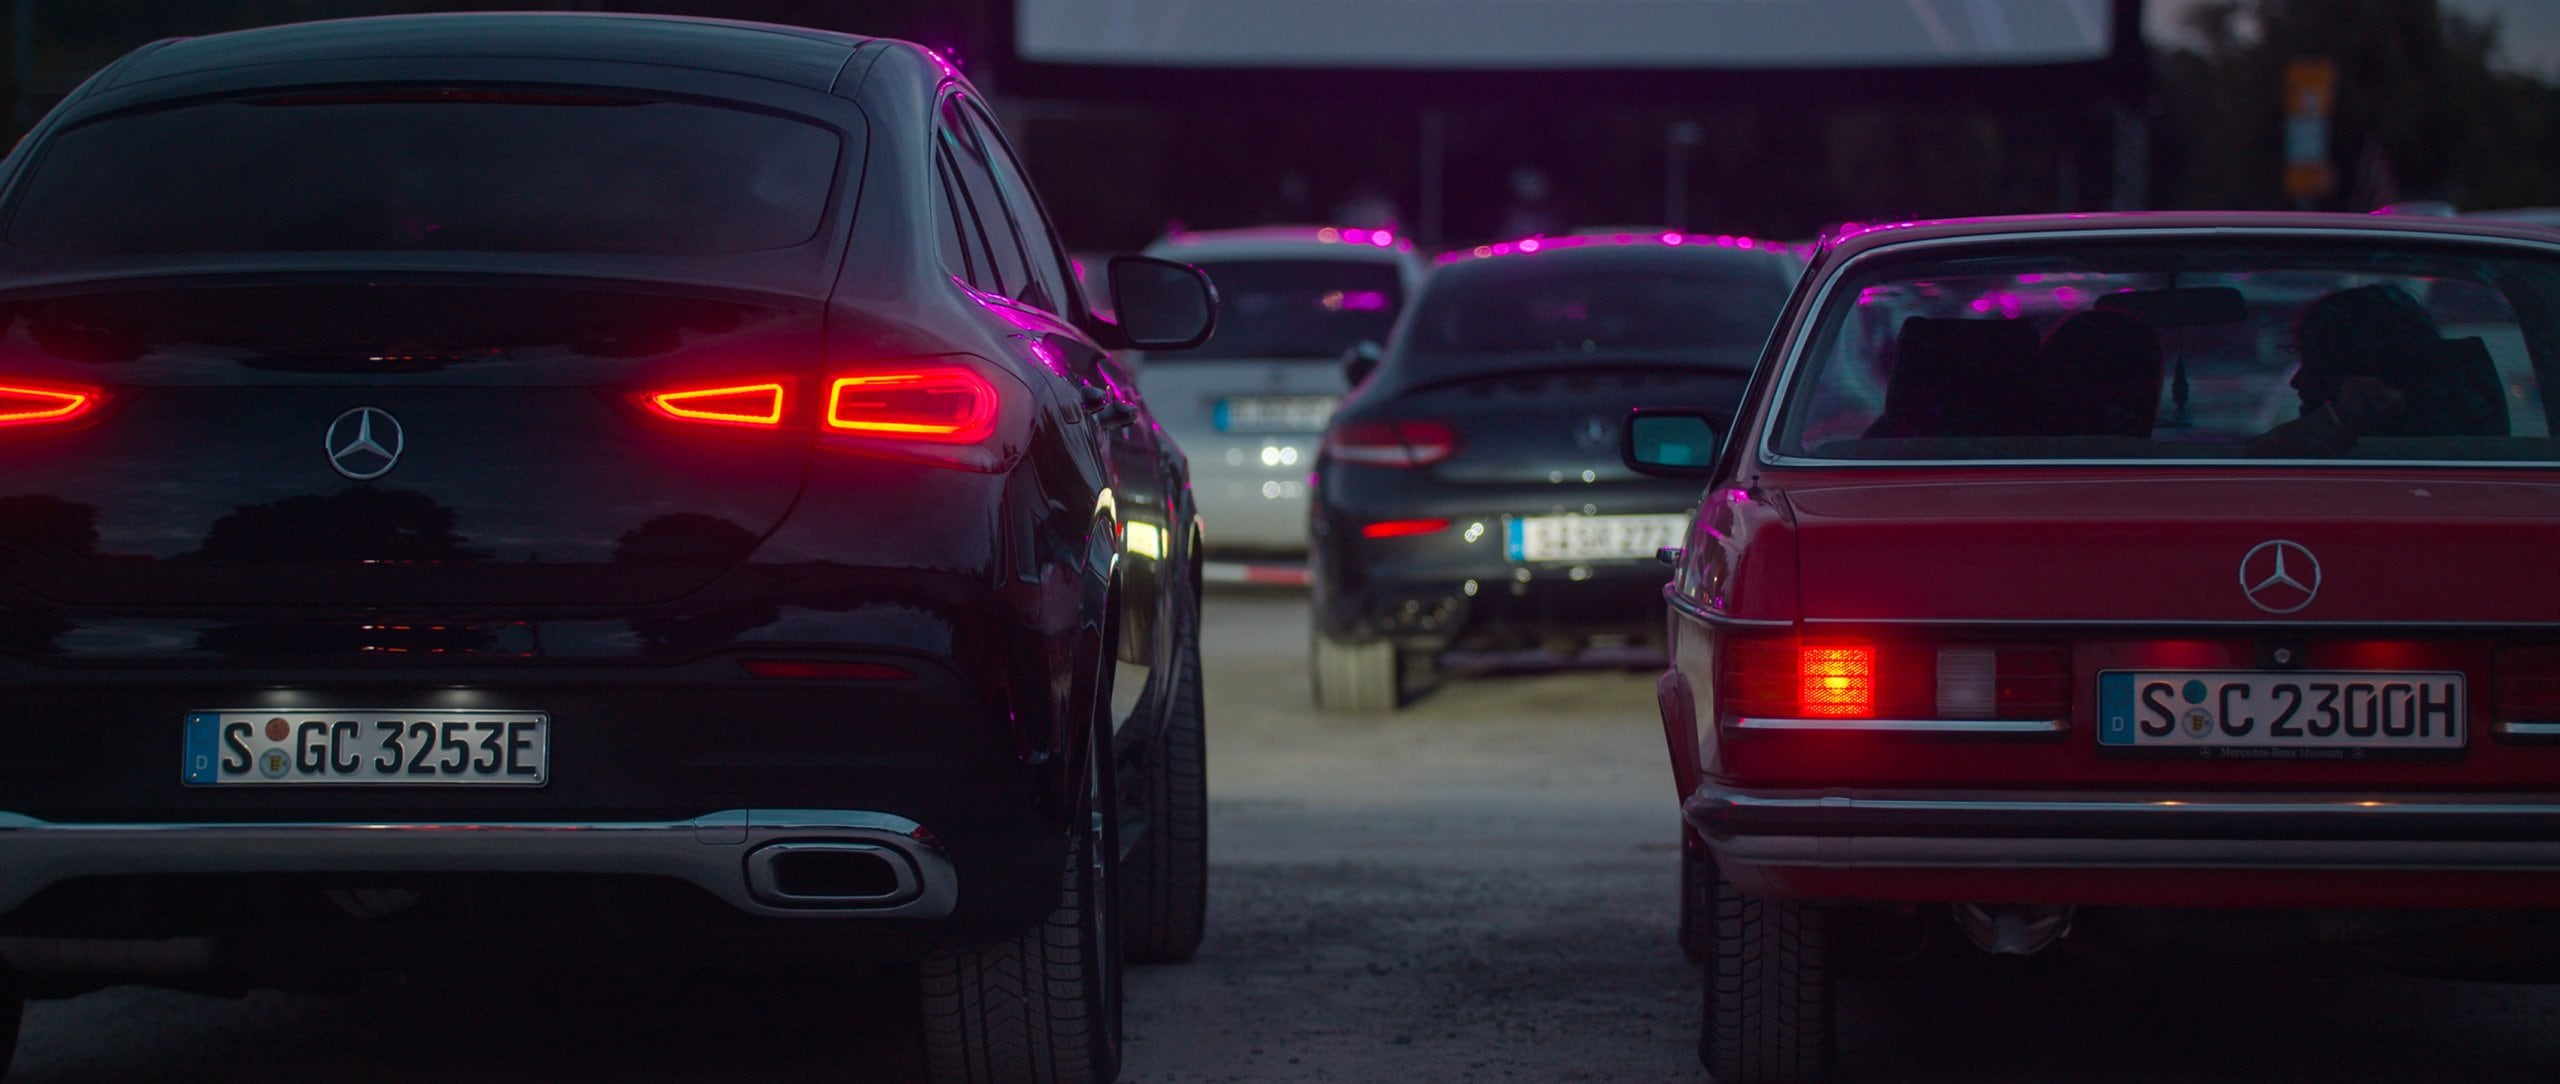 The new Mercedes-Benz GLE 350 de 4MATIC Coupé is in a drive-in cinema, next to it a Mercedes-Benz classic car.